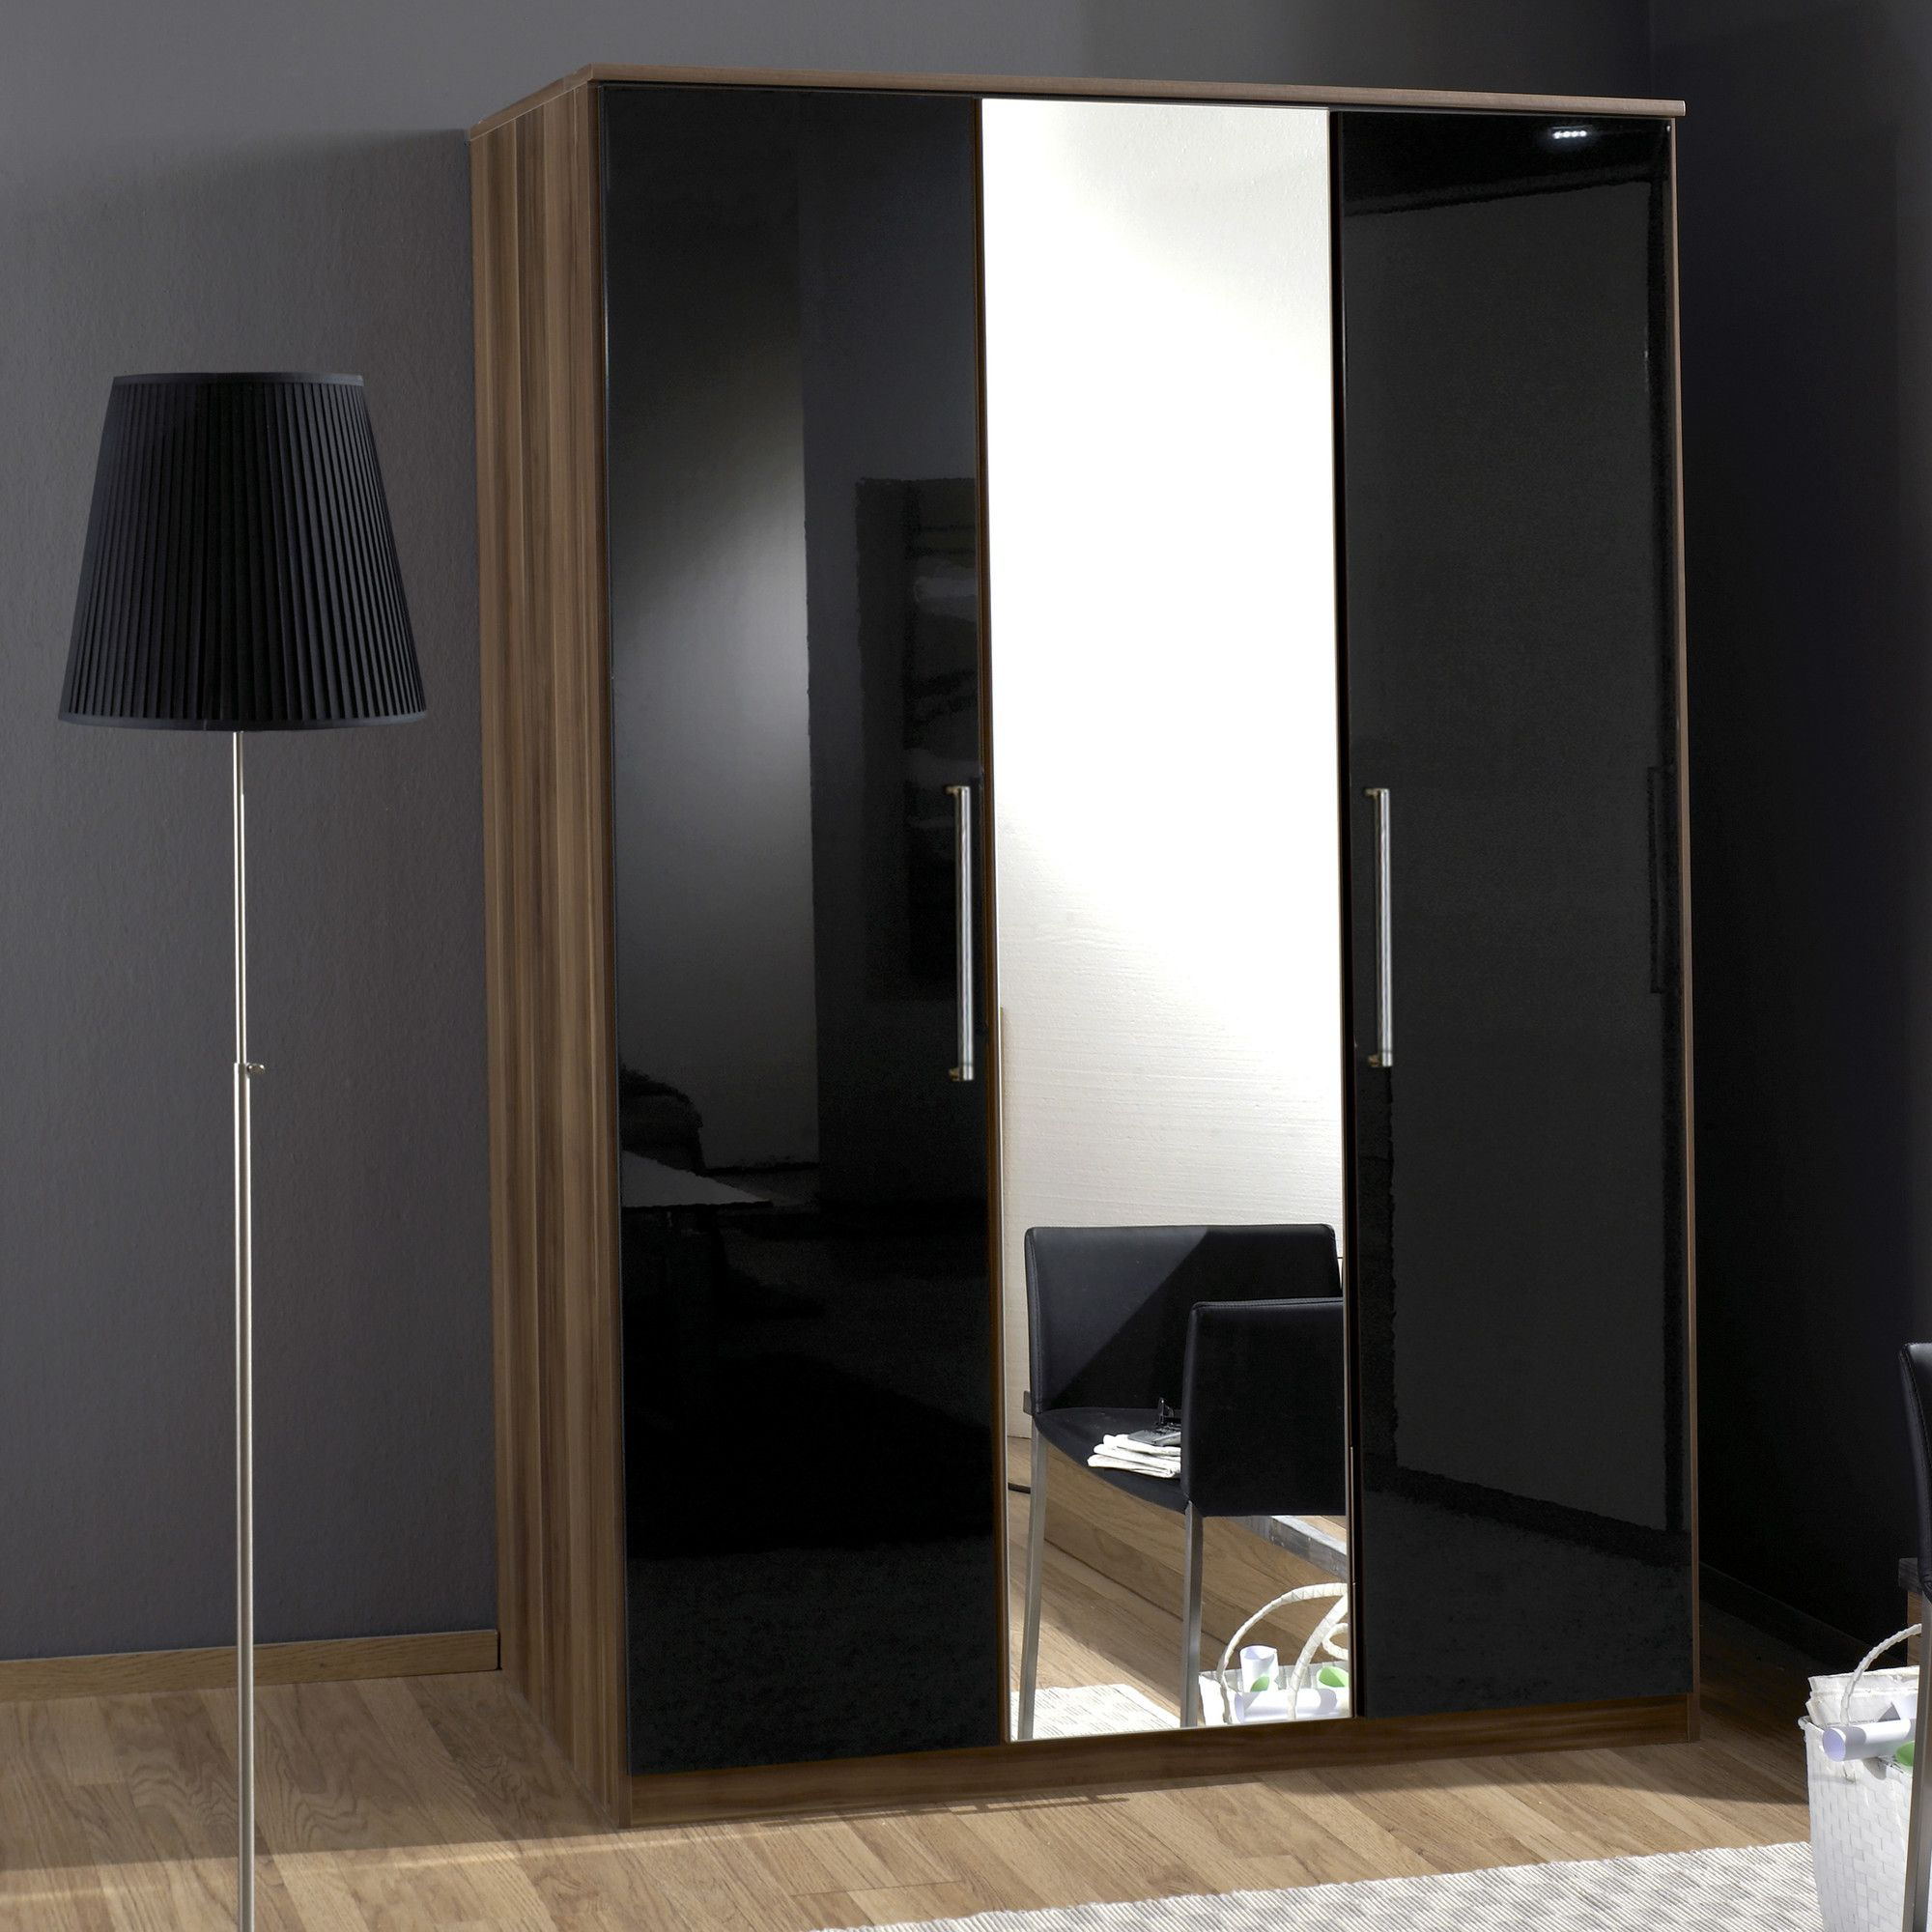 Amos Mann furniture Milano 3 Door Wardrobe - Black and Walnut at Tesco Direct